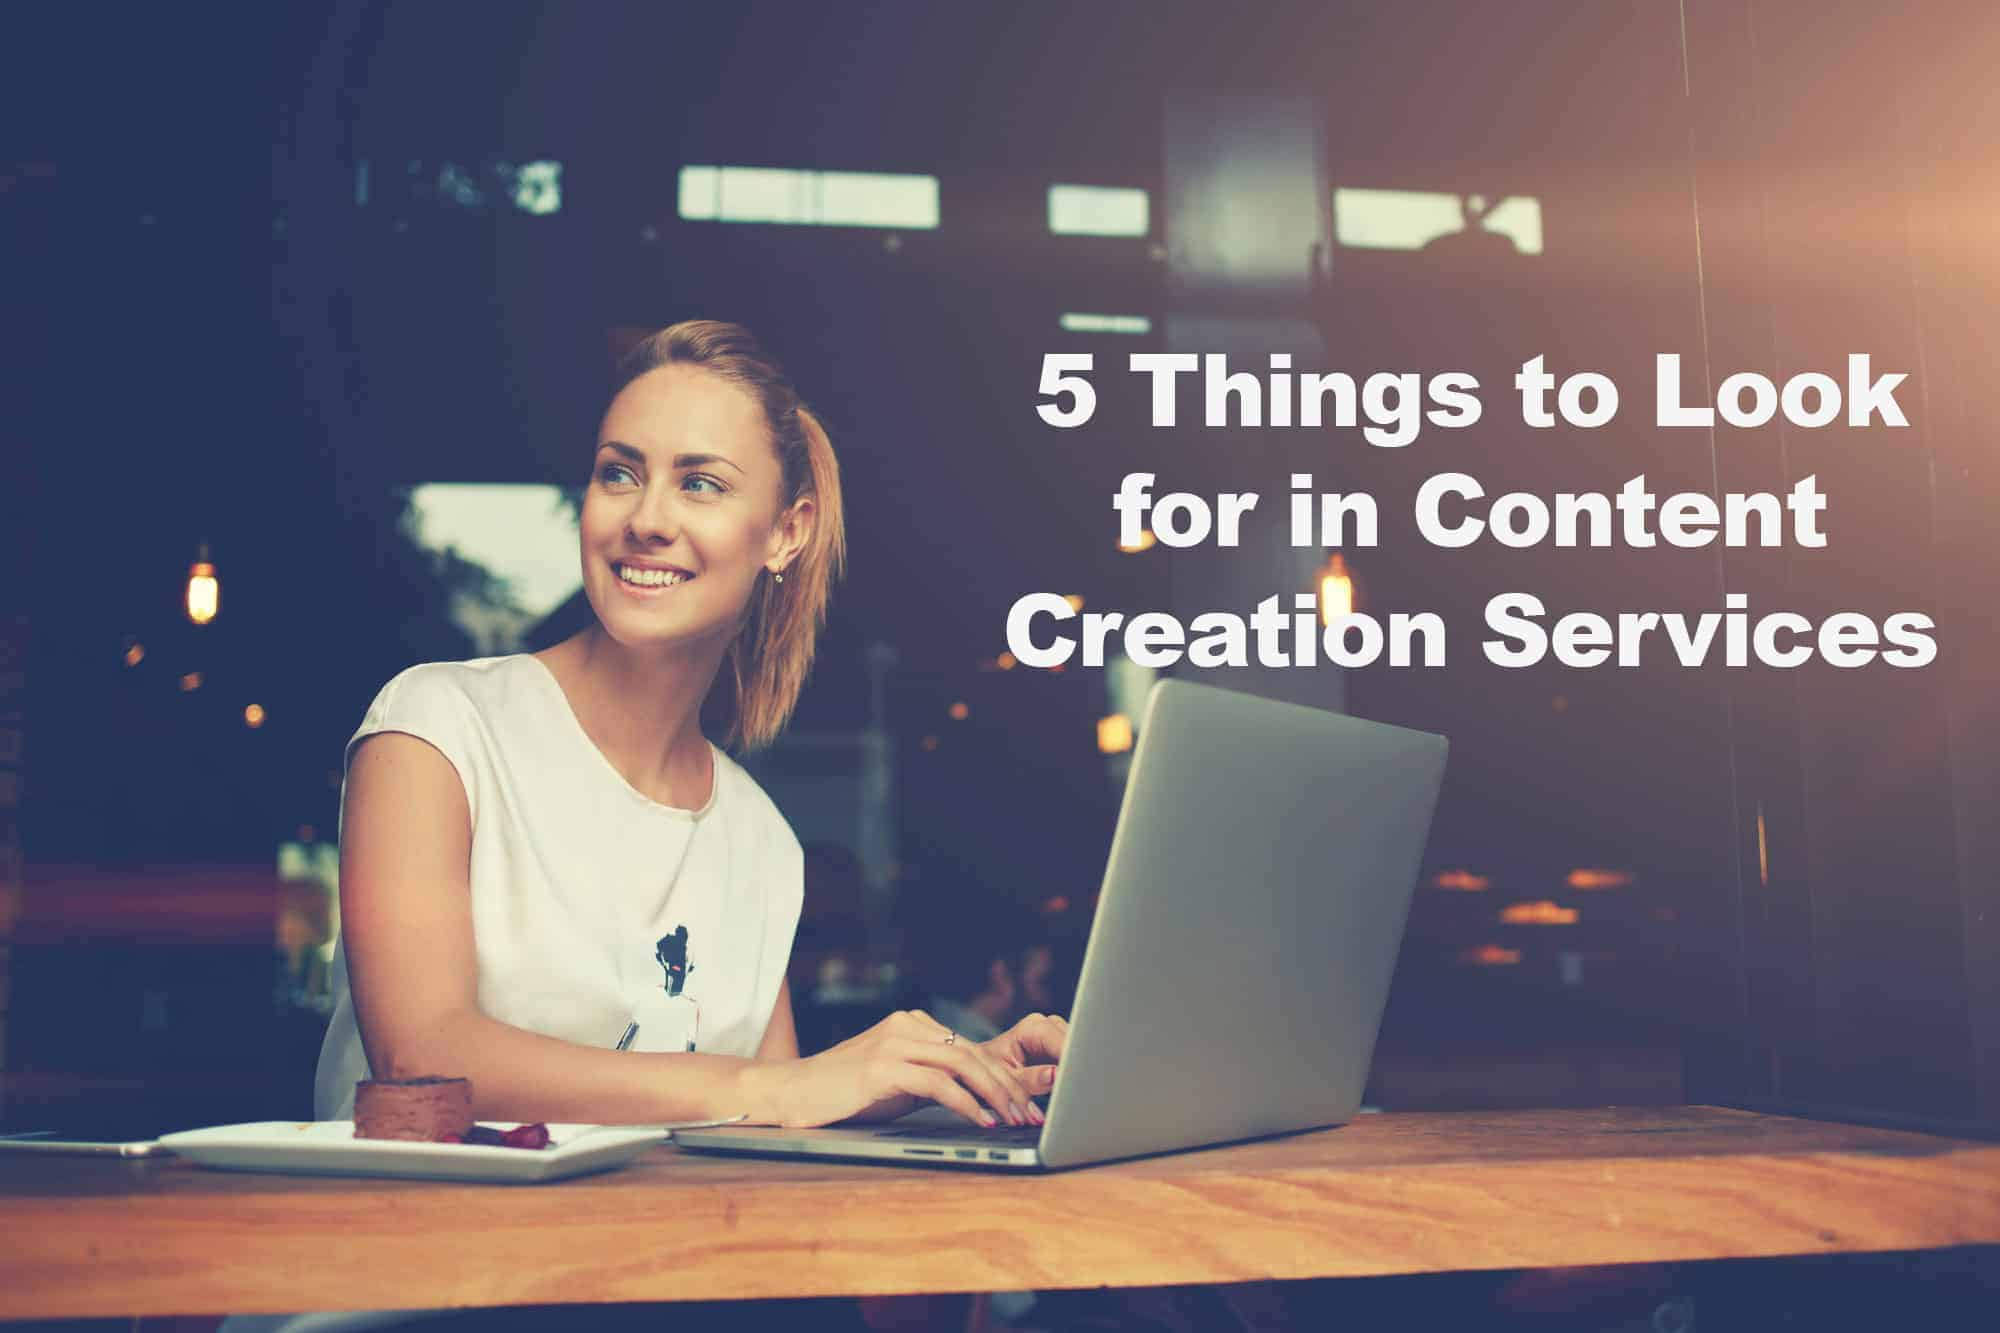 5 Things to look for in Content Creation Services